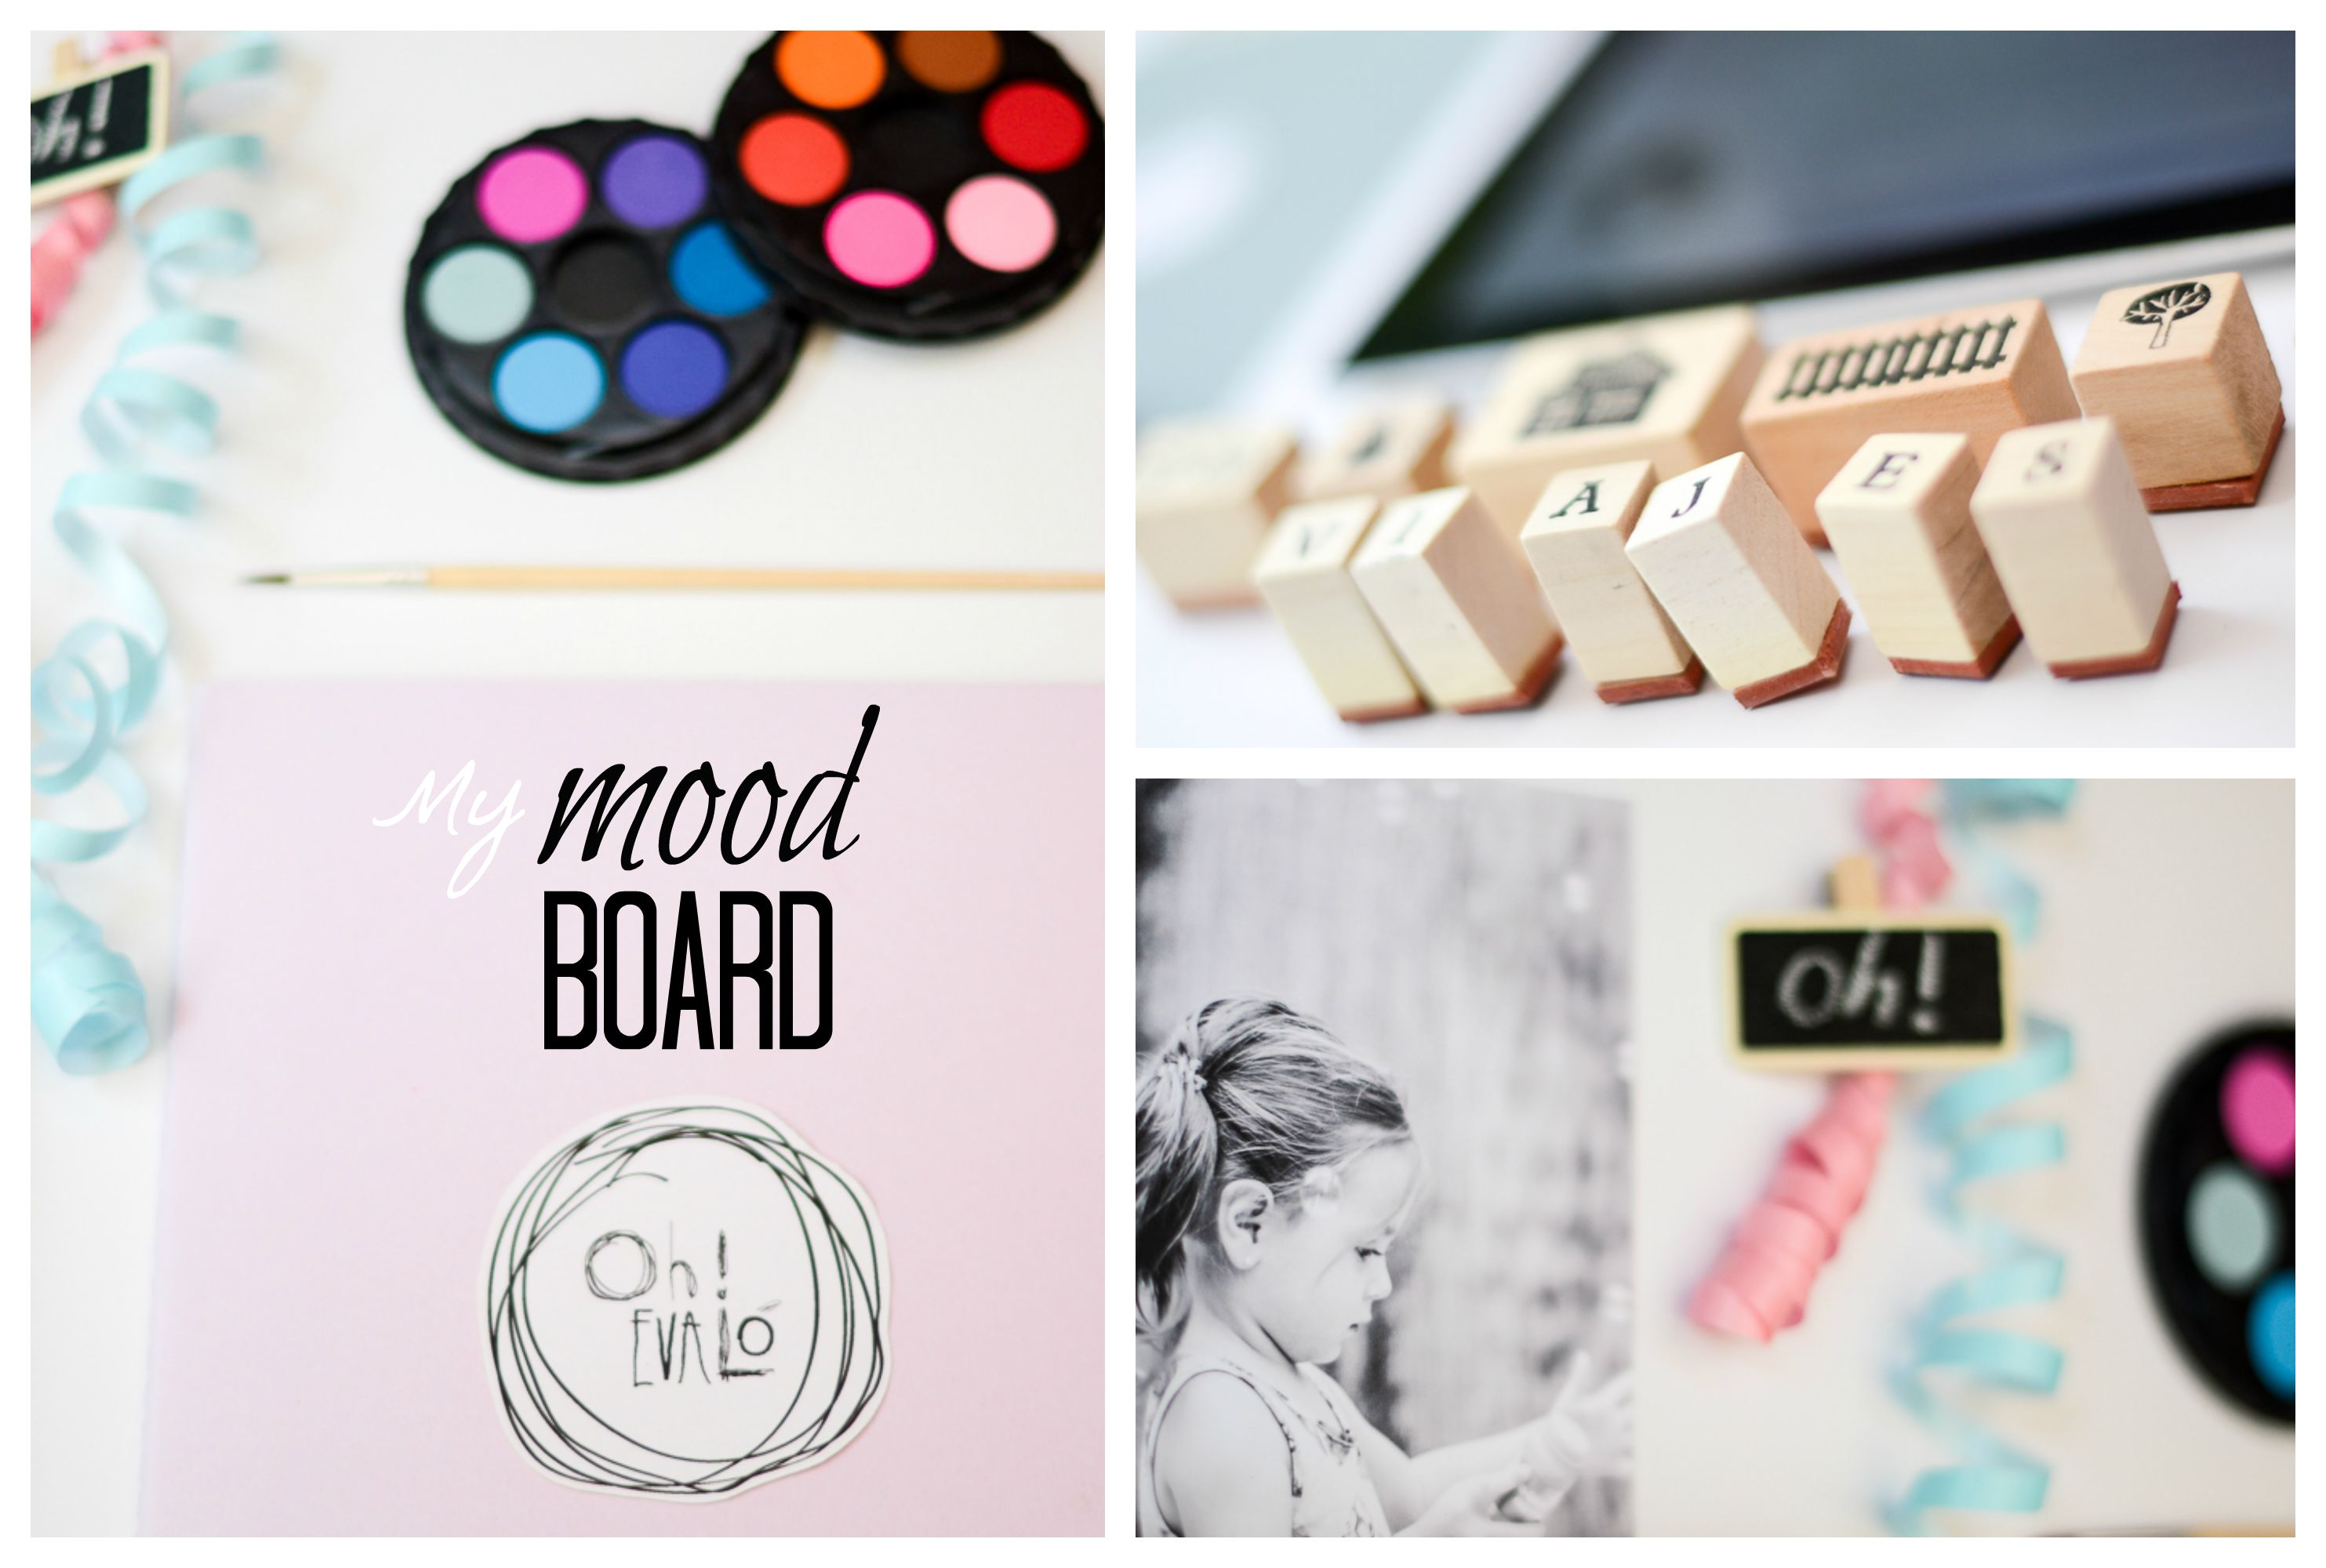 moodboardcollage